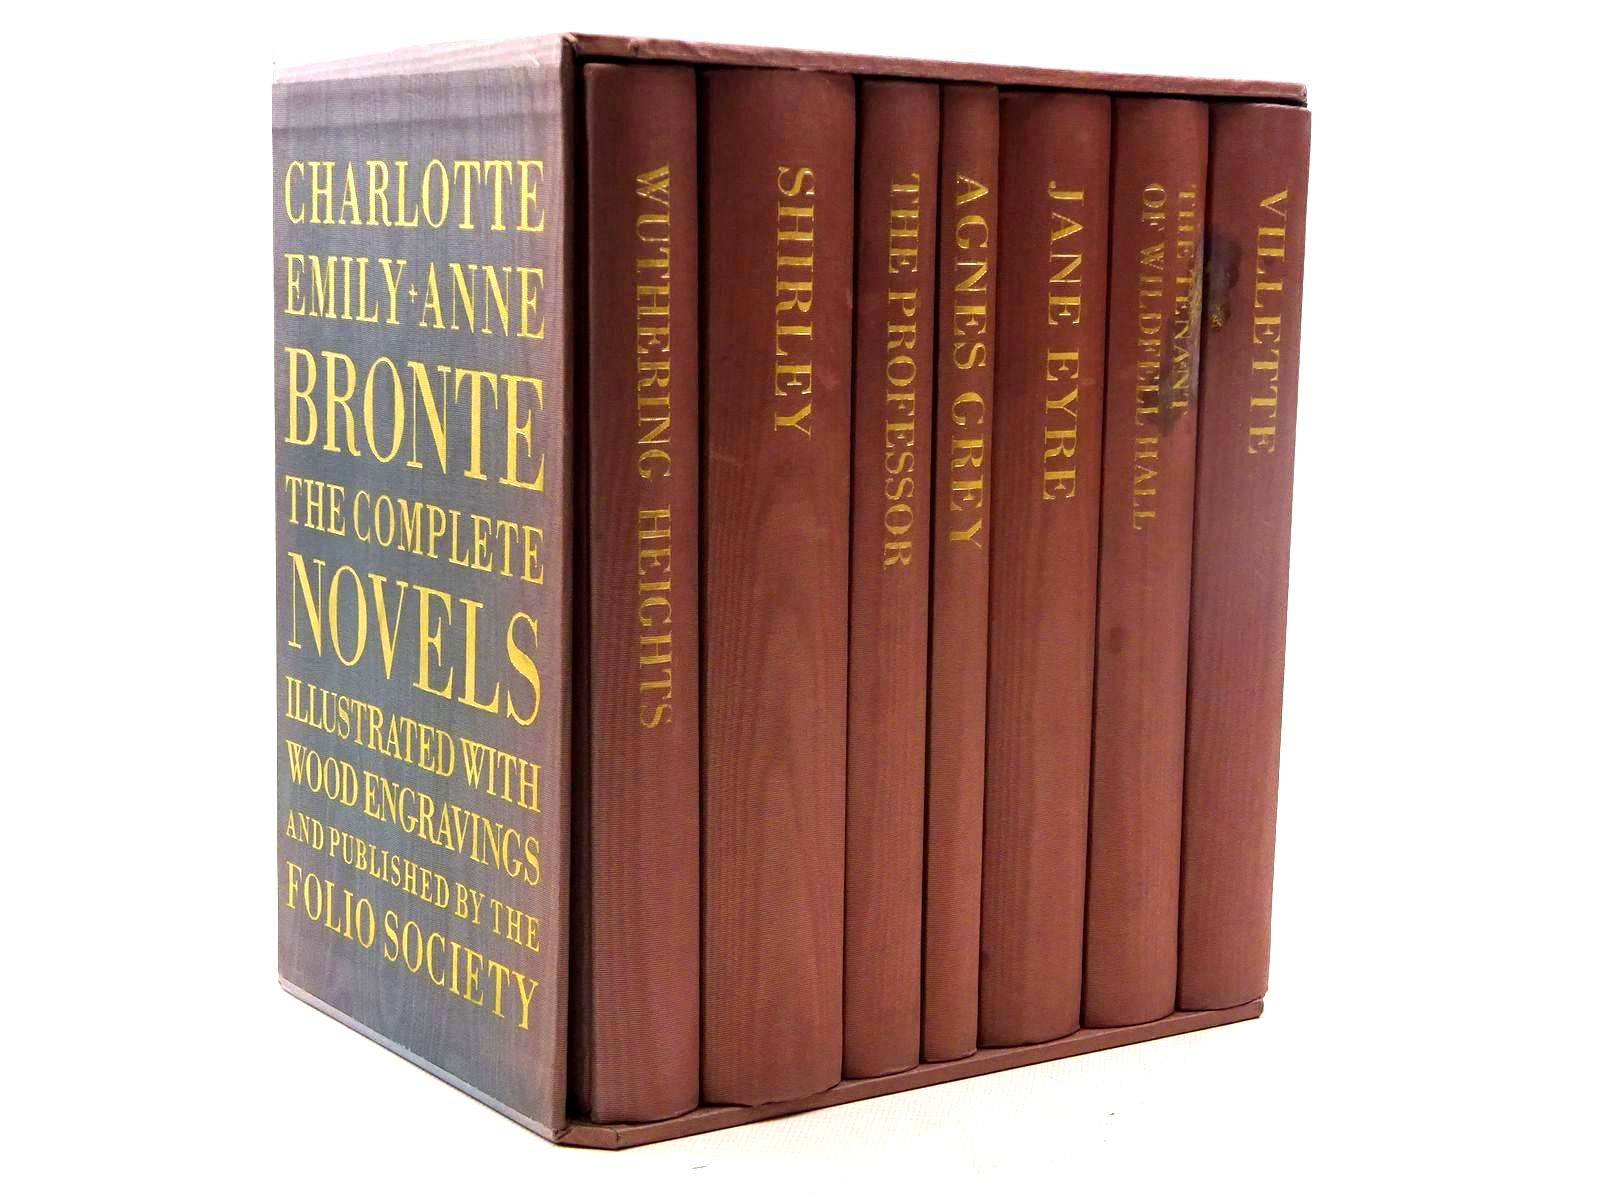 Photo of CHARLOTTE, EMILY & ANNE BRONTE THE COMPLETE NOVELS (7 VOLUMES) written by Bronte, Charlotte<br />Bronte, Emily<br />Bronte, Anne illustrated by Forster, Peter<br />Brockway, Harry<br />Stephens, Ian<br />et al.,  published by Folio Society (STOCK CODE: 2125461)  for sale by Stella & Rose's Books